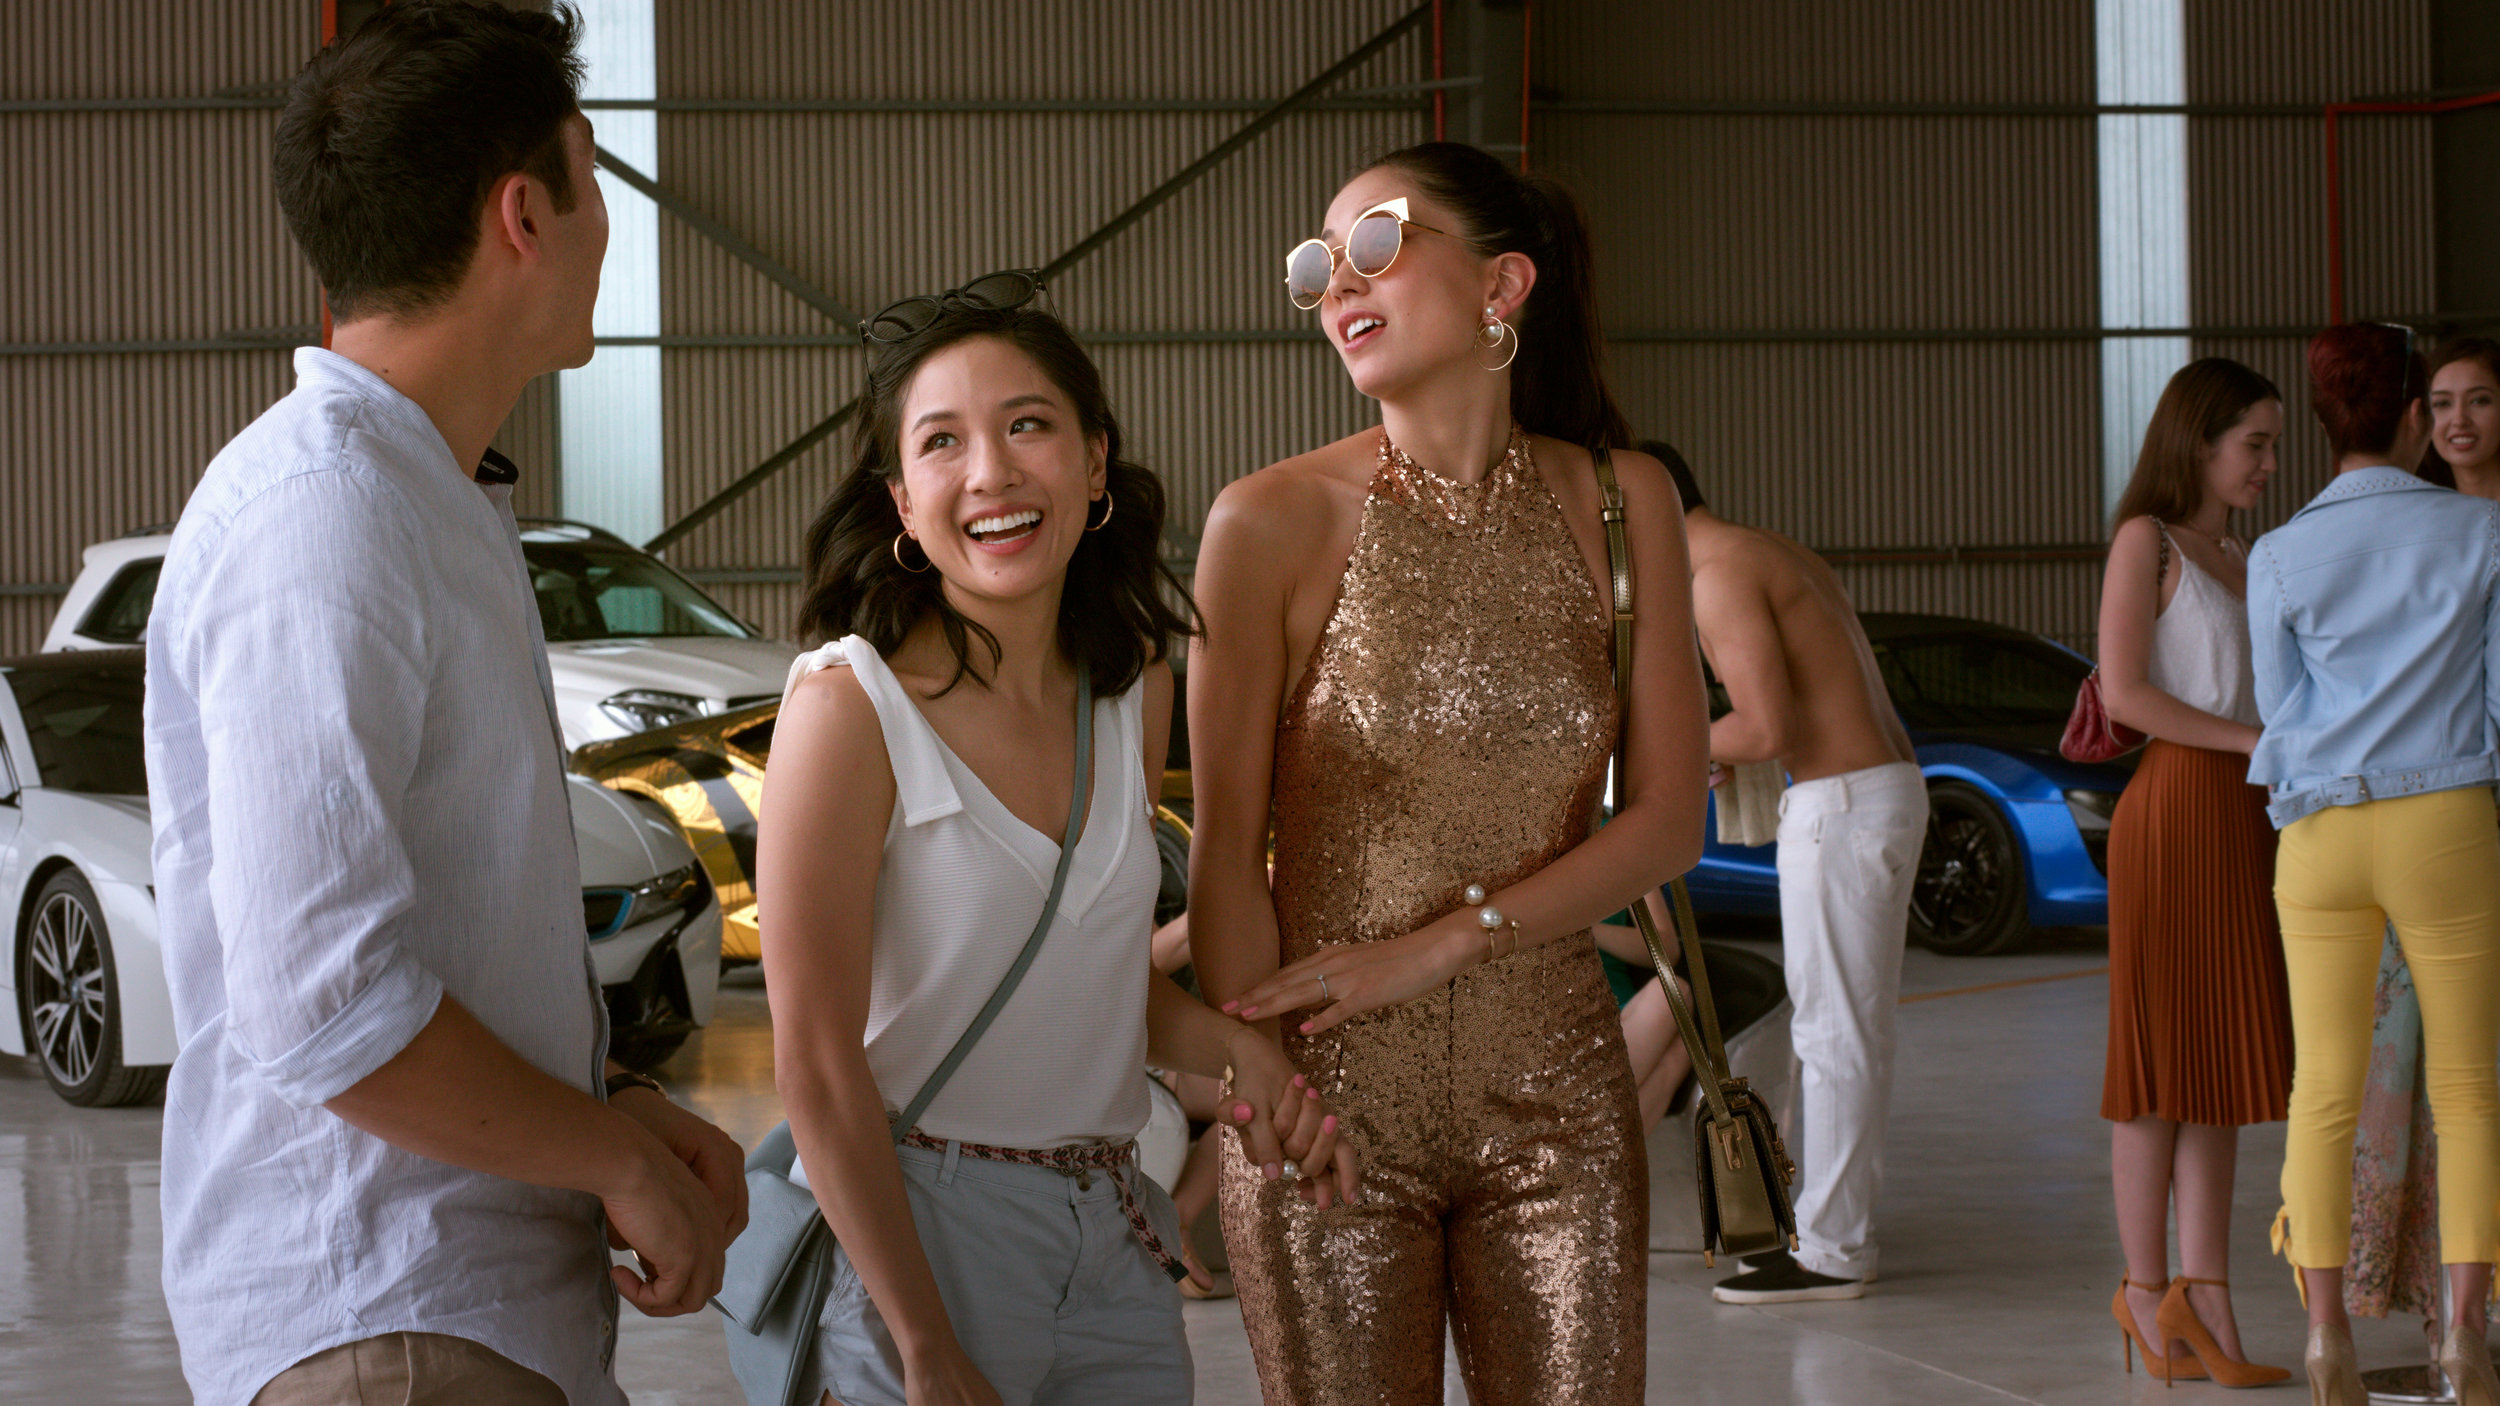 """Rachel Chu (Constance Wu, center) gets a crash course in the super-rich when her boyfriend Nick (Henry Golding, left) brings her to Singapore for a friend's wedding — and the bachelorette party for the bride, Araminta (Sonoya Mizuno, right) — in the comedy """"Crazy Rich Asians."""" (Photo by Sanja Bucko, courtesy of Warner Bros. Pictures)"""